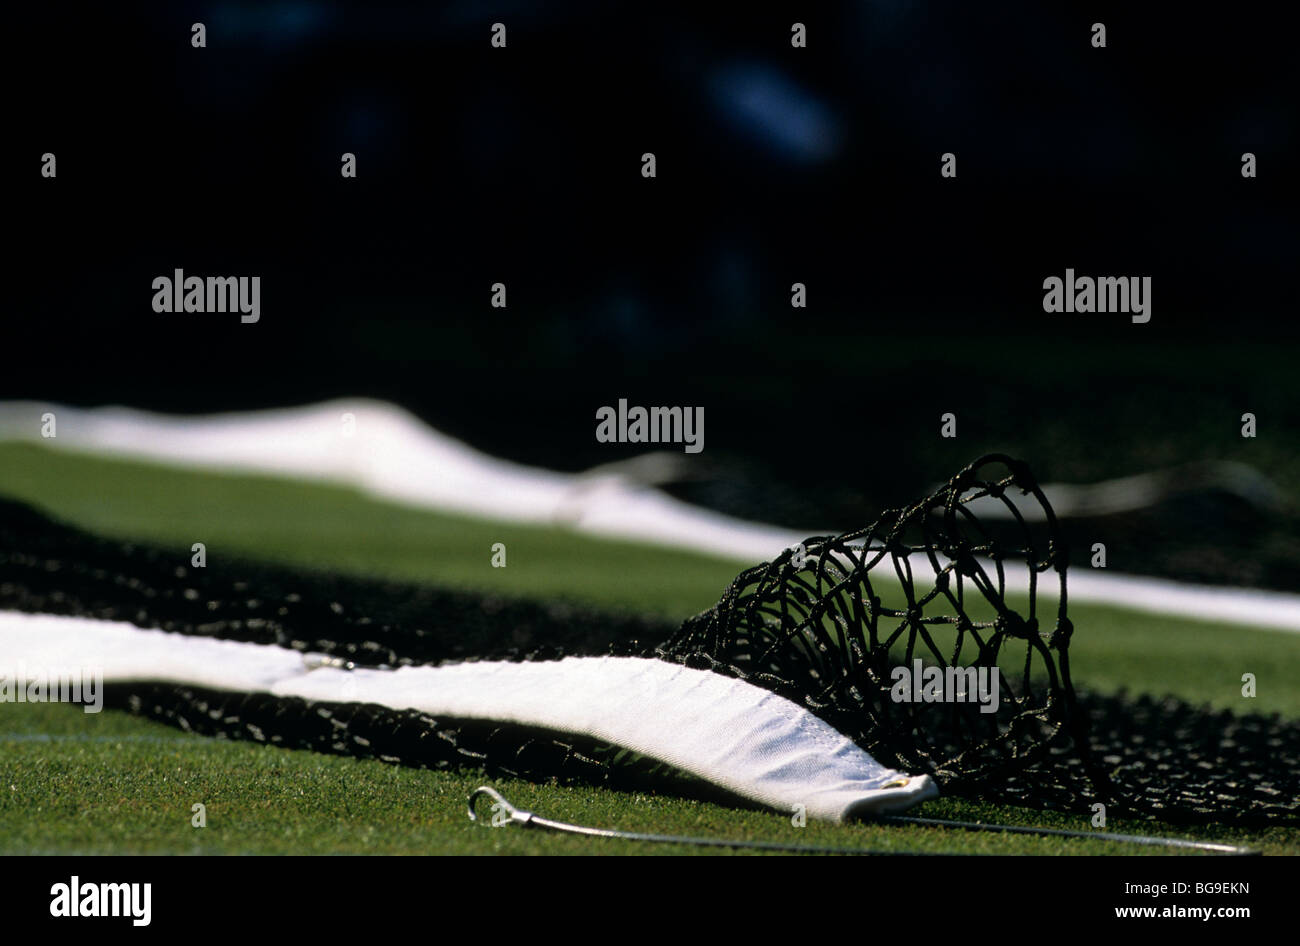 Dismantled tennis net on a grass court - Stock Image